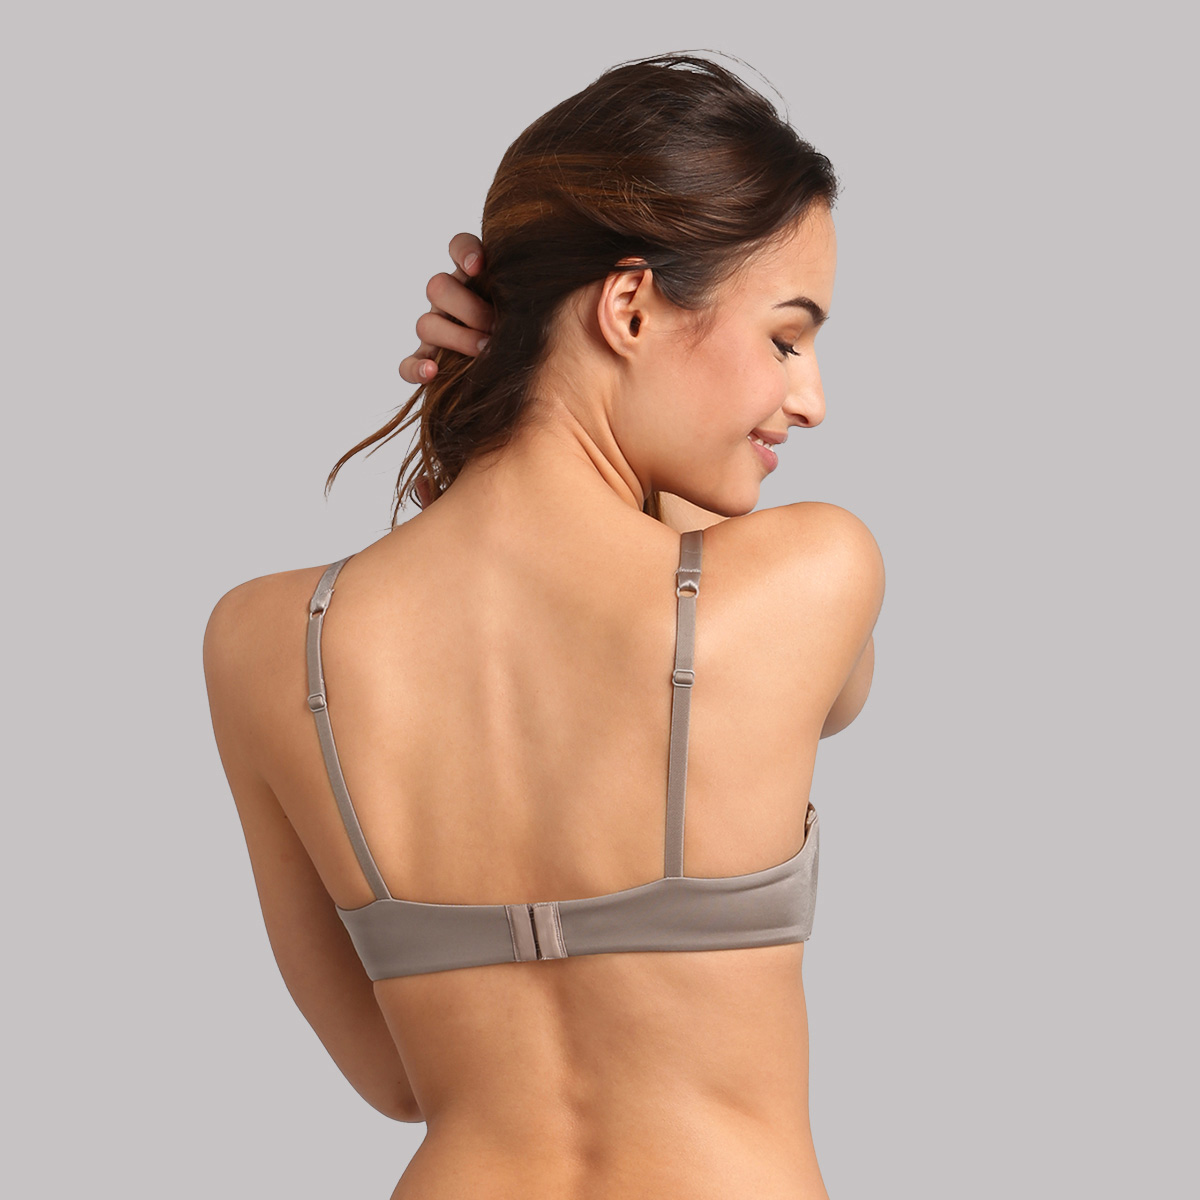 Soutien-gorge aux armatures amovibles taupe 24h Soft Absolu , , PLAYTEX